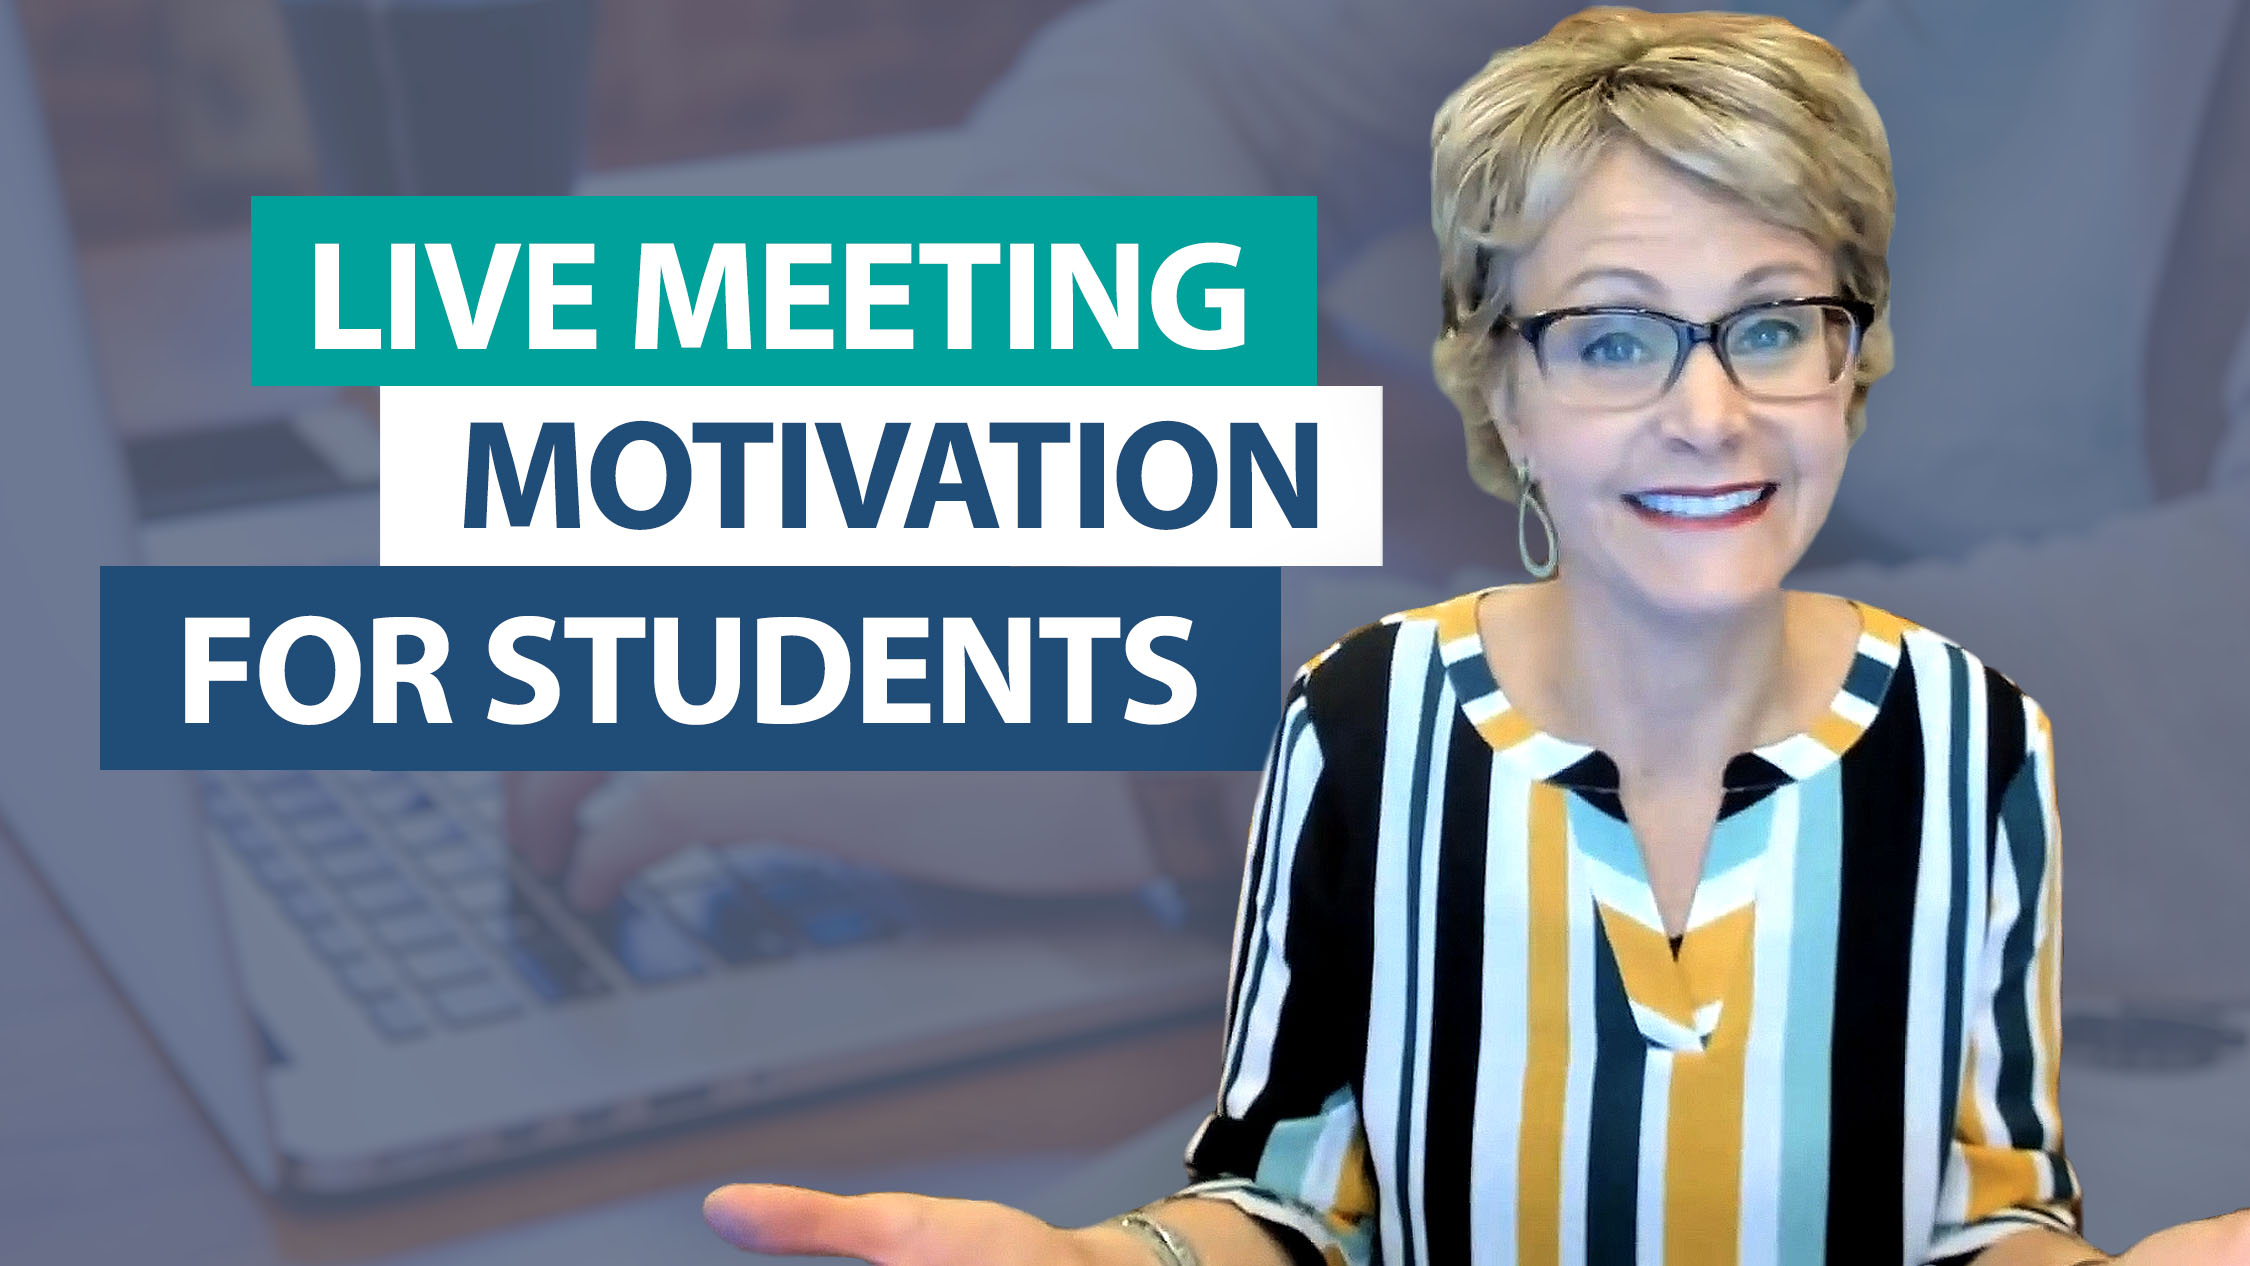 Ask Smekens: How can I motivate students to attend live meetings?